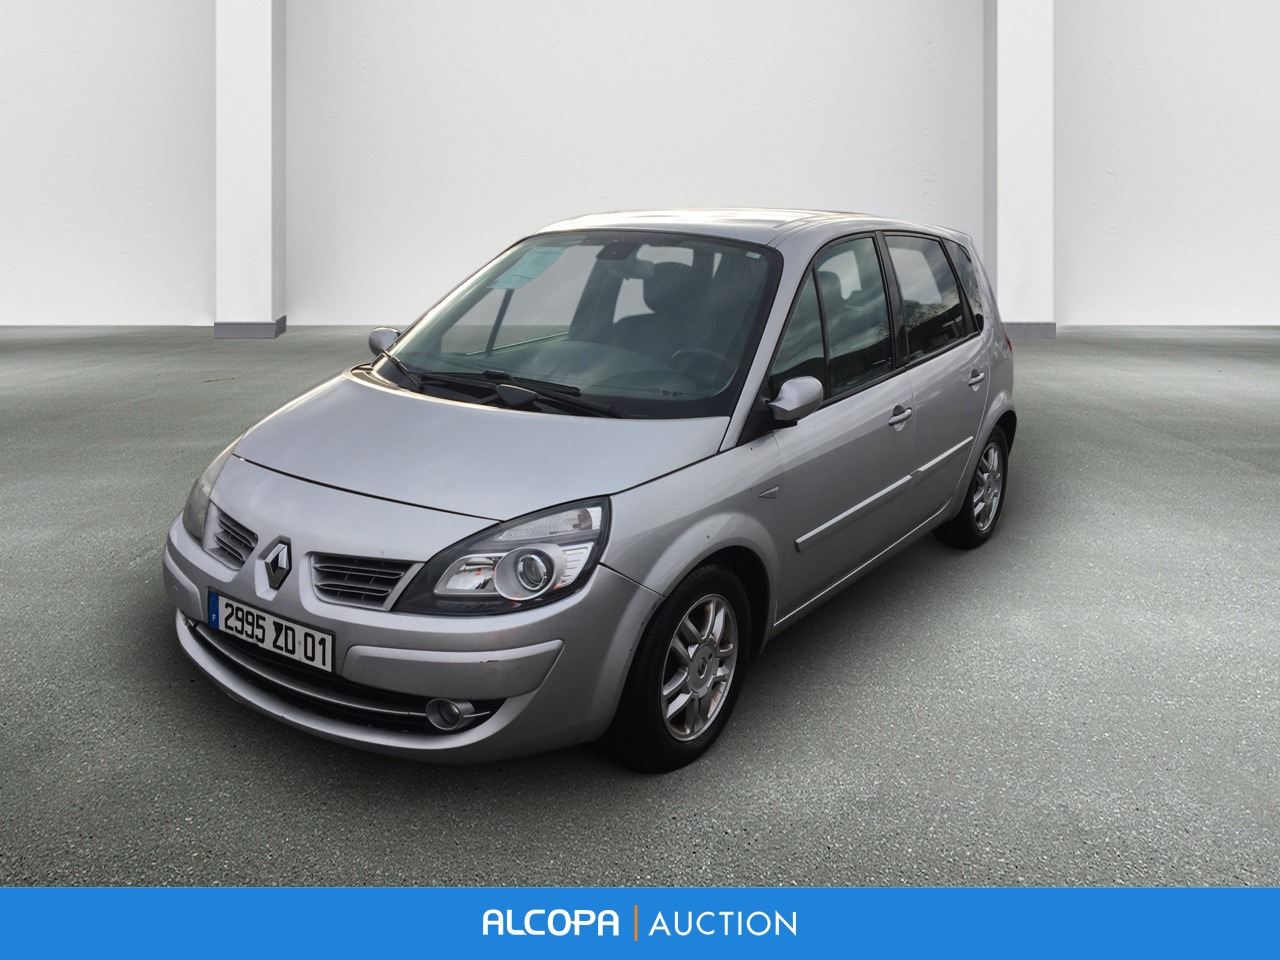 renault scenic ii scenic 1 5 dci 105 eco2 exception alcopa auction. Black Bedroom Furniture Sets. Home Design Ideas